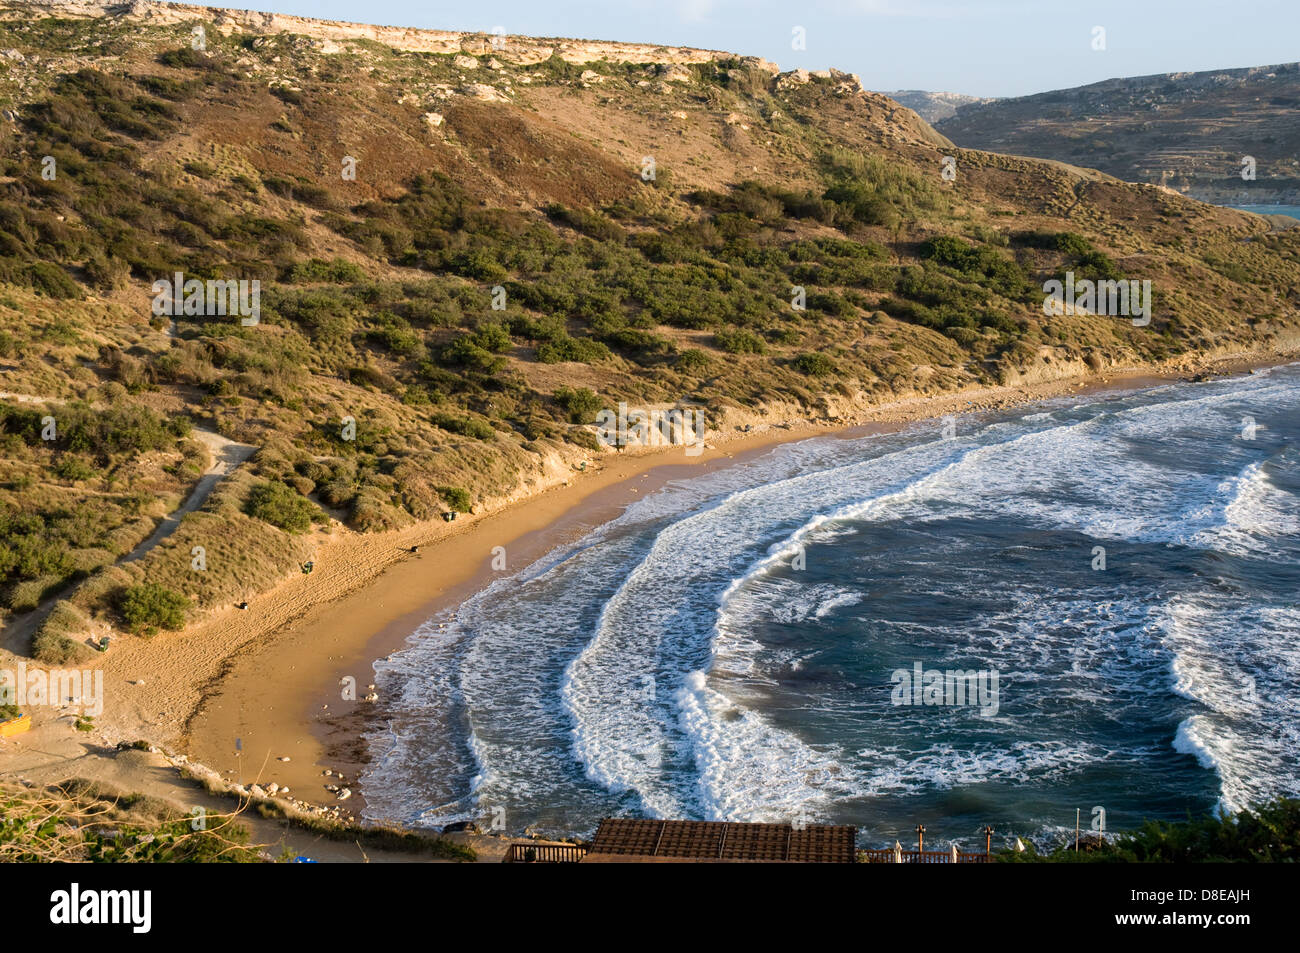 Strong winds drive large waves on to a deserted beach at Ghajn Tuffieha , Malta - Stock Image